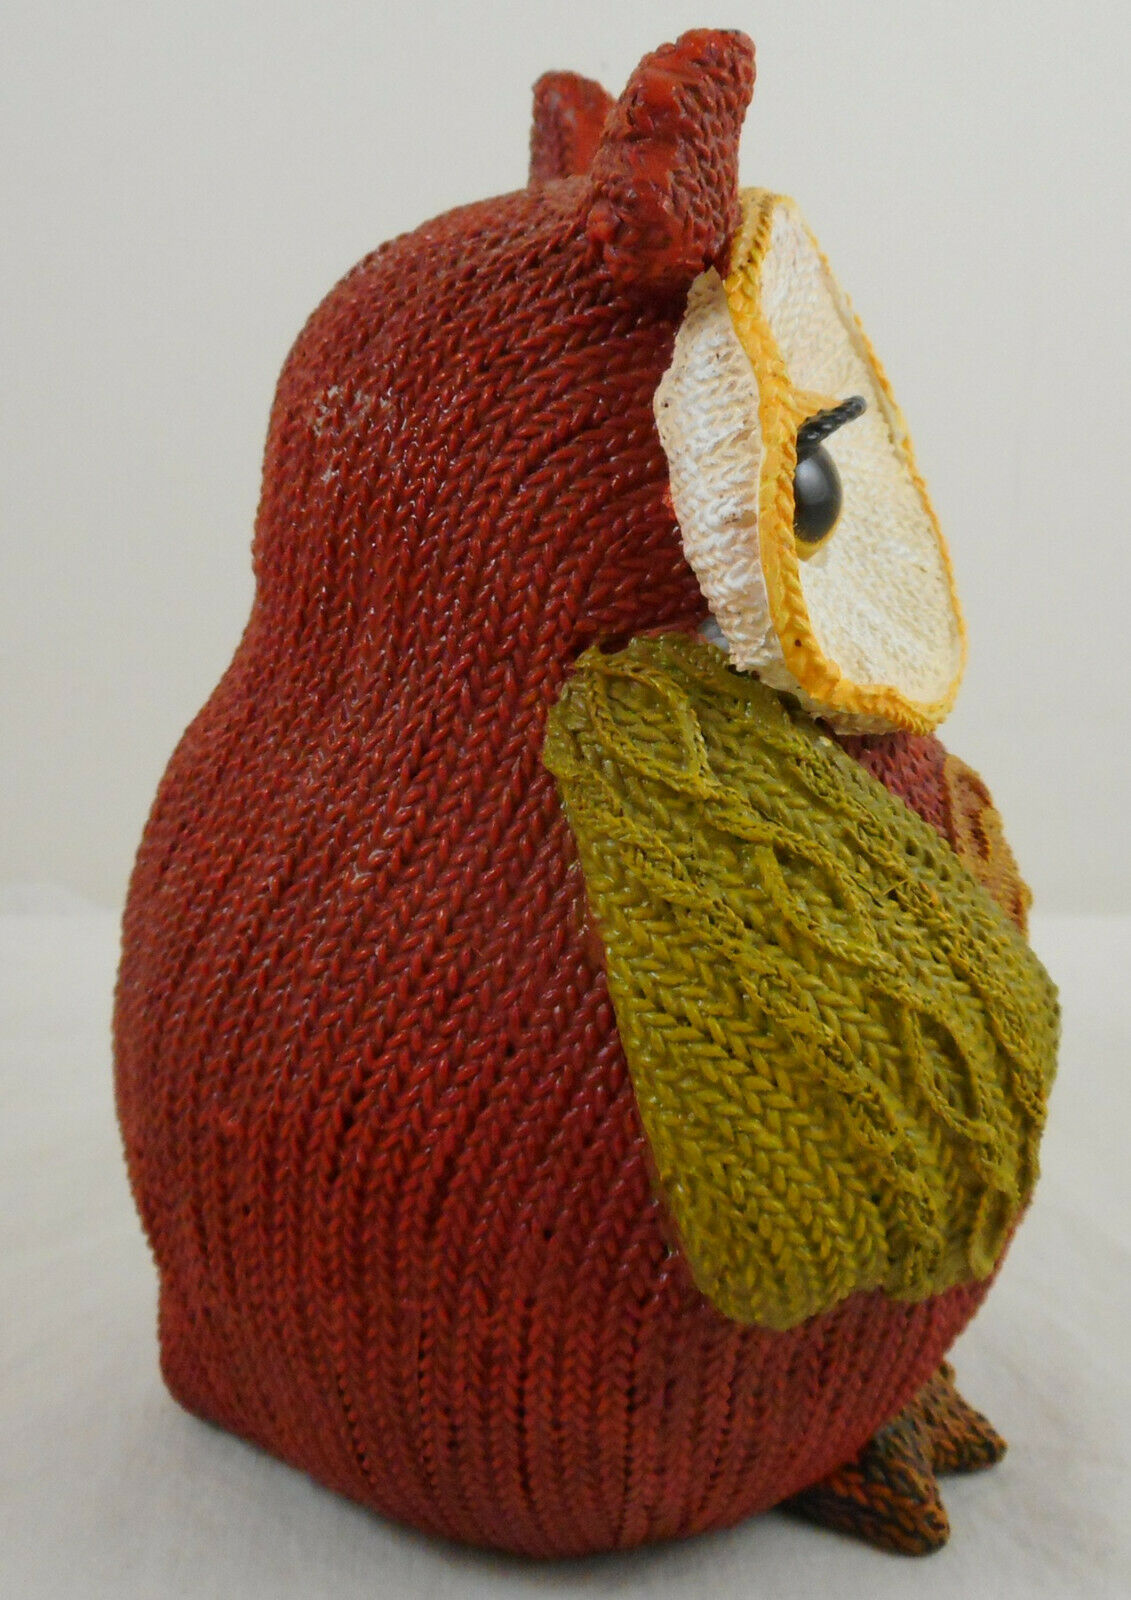 """Multi Color Resin Owl Knitted Look Knit Figurine 6"""" Fall Decoration Heart image 2"""